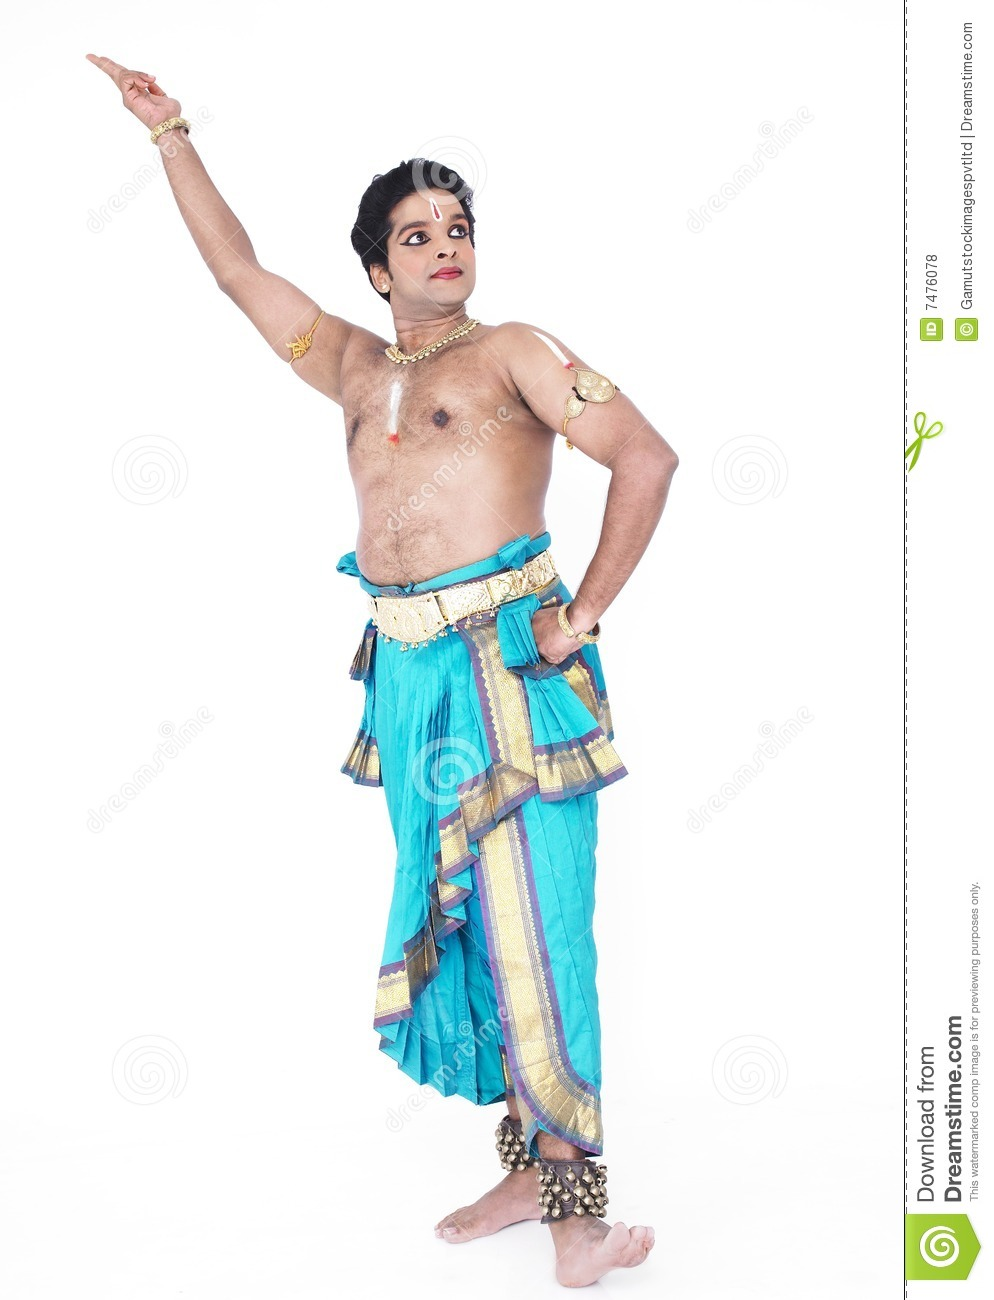 Male Classical Dancer From Asia Royalty Free Stock Photos - Image ...